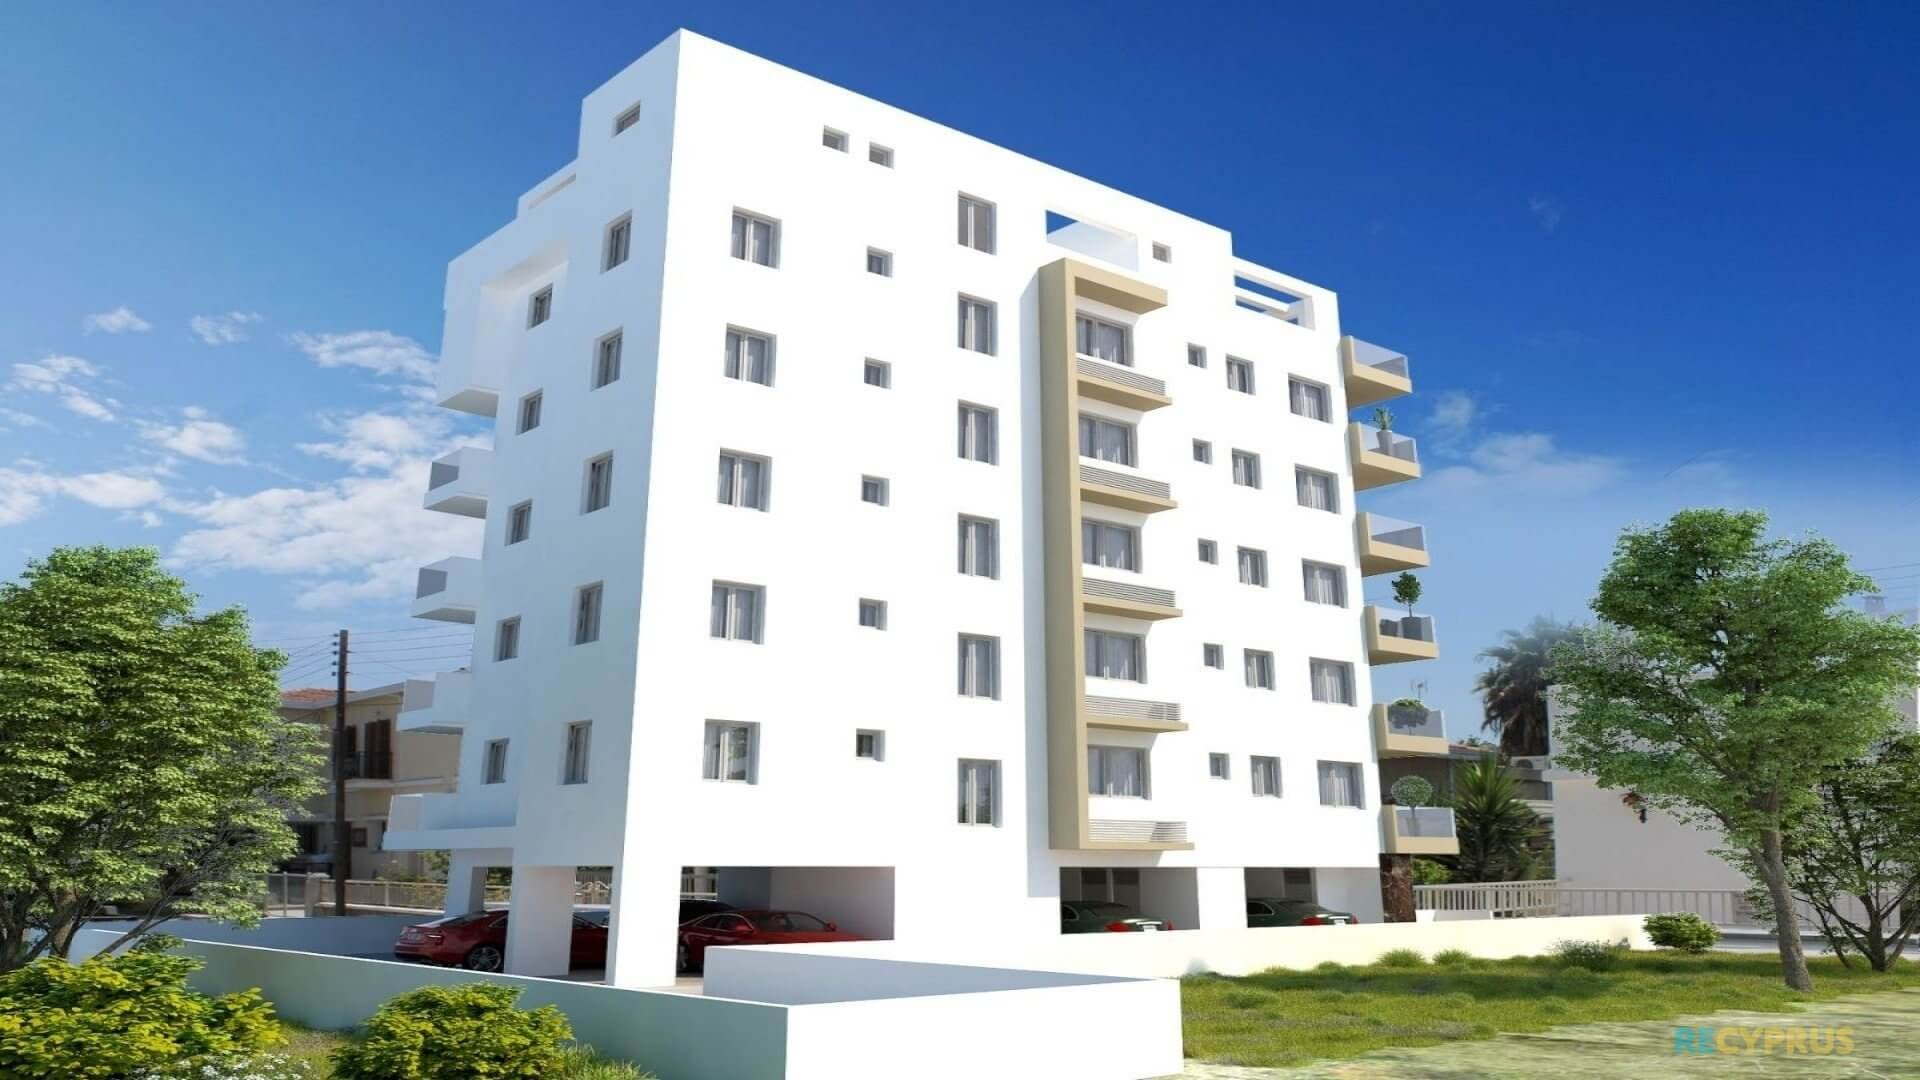 Apartment for sale City Center Larnaca Cyprus 1 3596